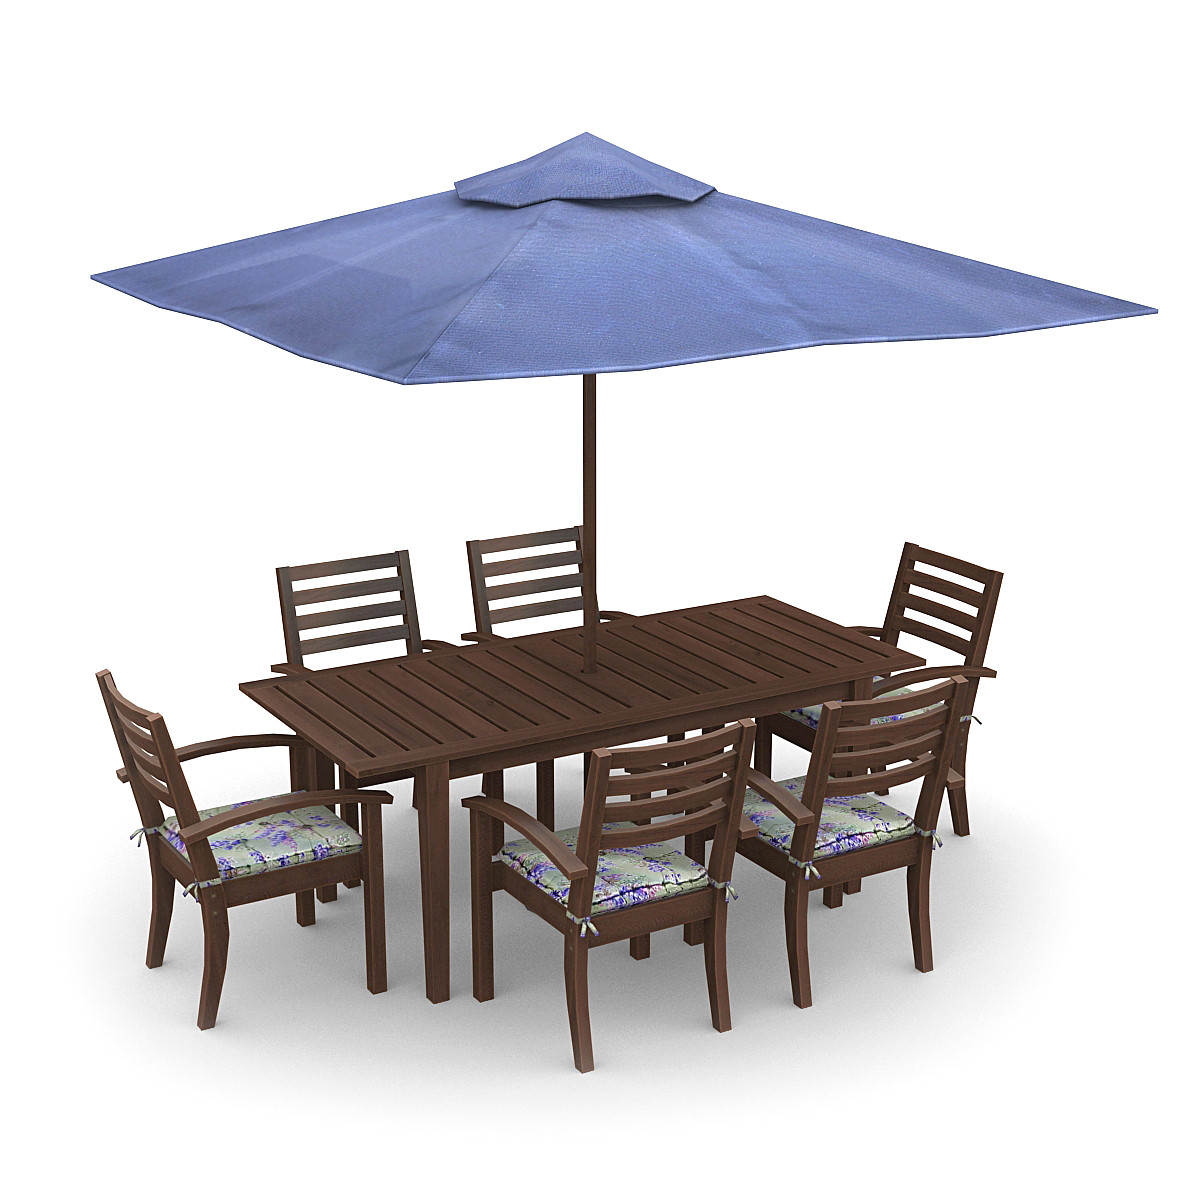 Outdoor Furniture Table Chairs Max